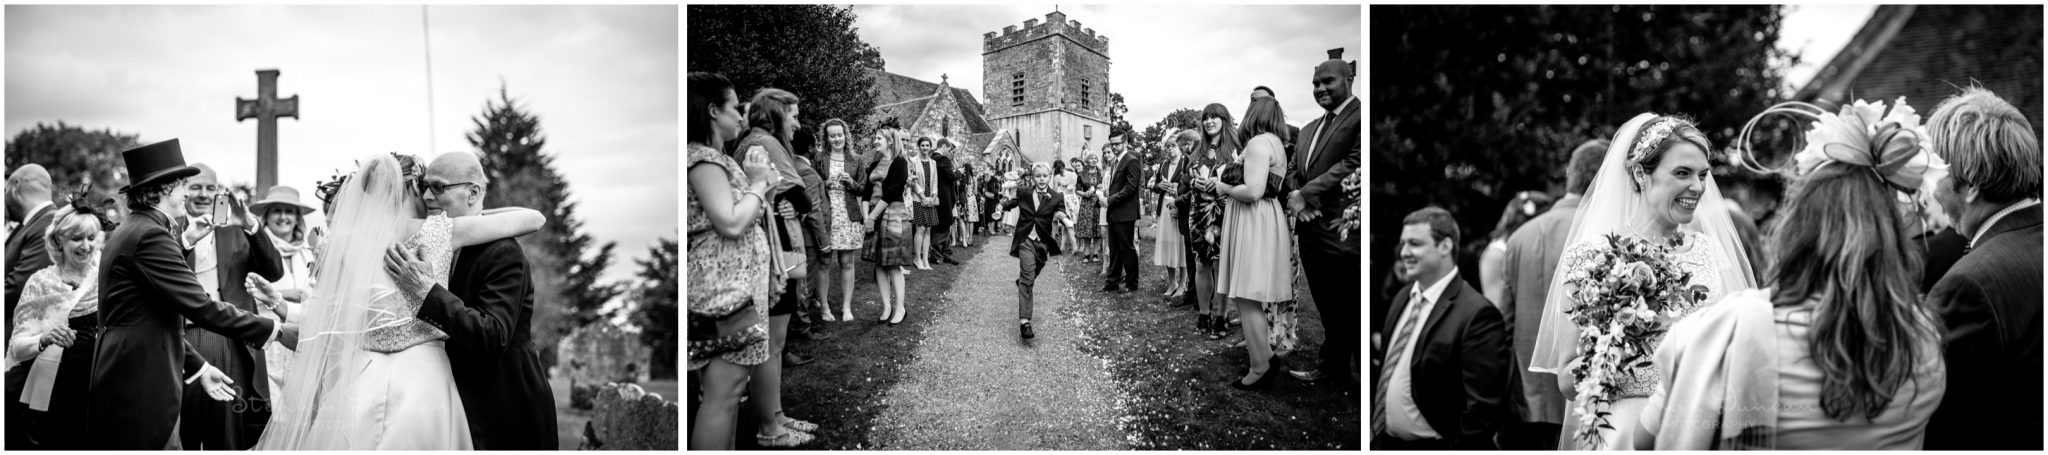 Lymington wedding photography guests outside church